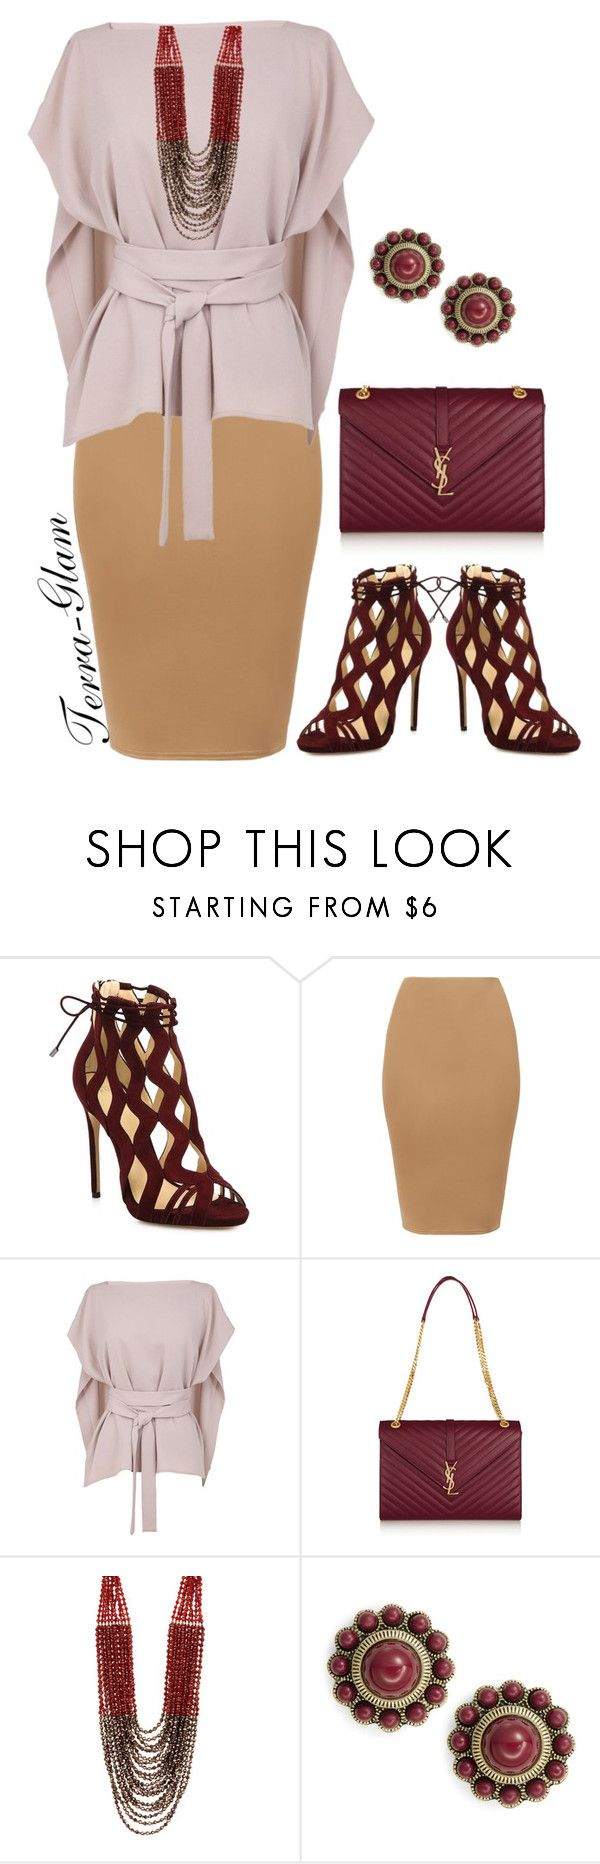 """Wine Is Wonderful"" by terra-glam ❤ liked on Polyvore featuring Alexandre Birman, TIBI, Yves Saint Laurent, NAKAMOL and Robert Rose"